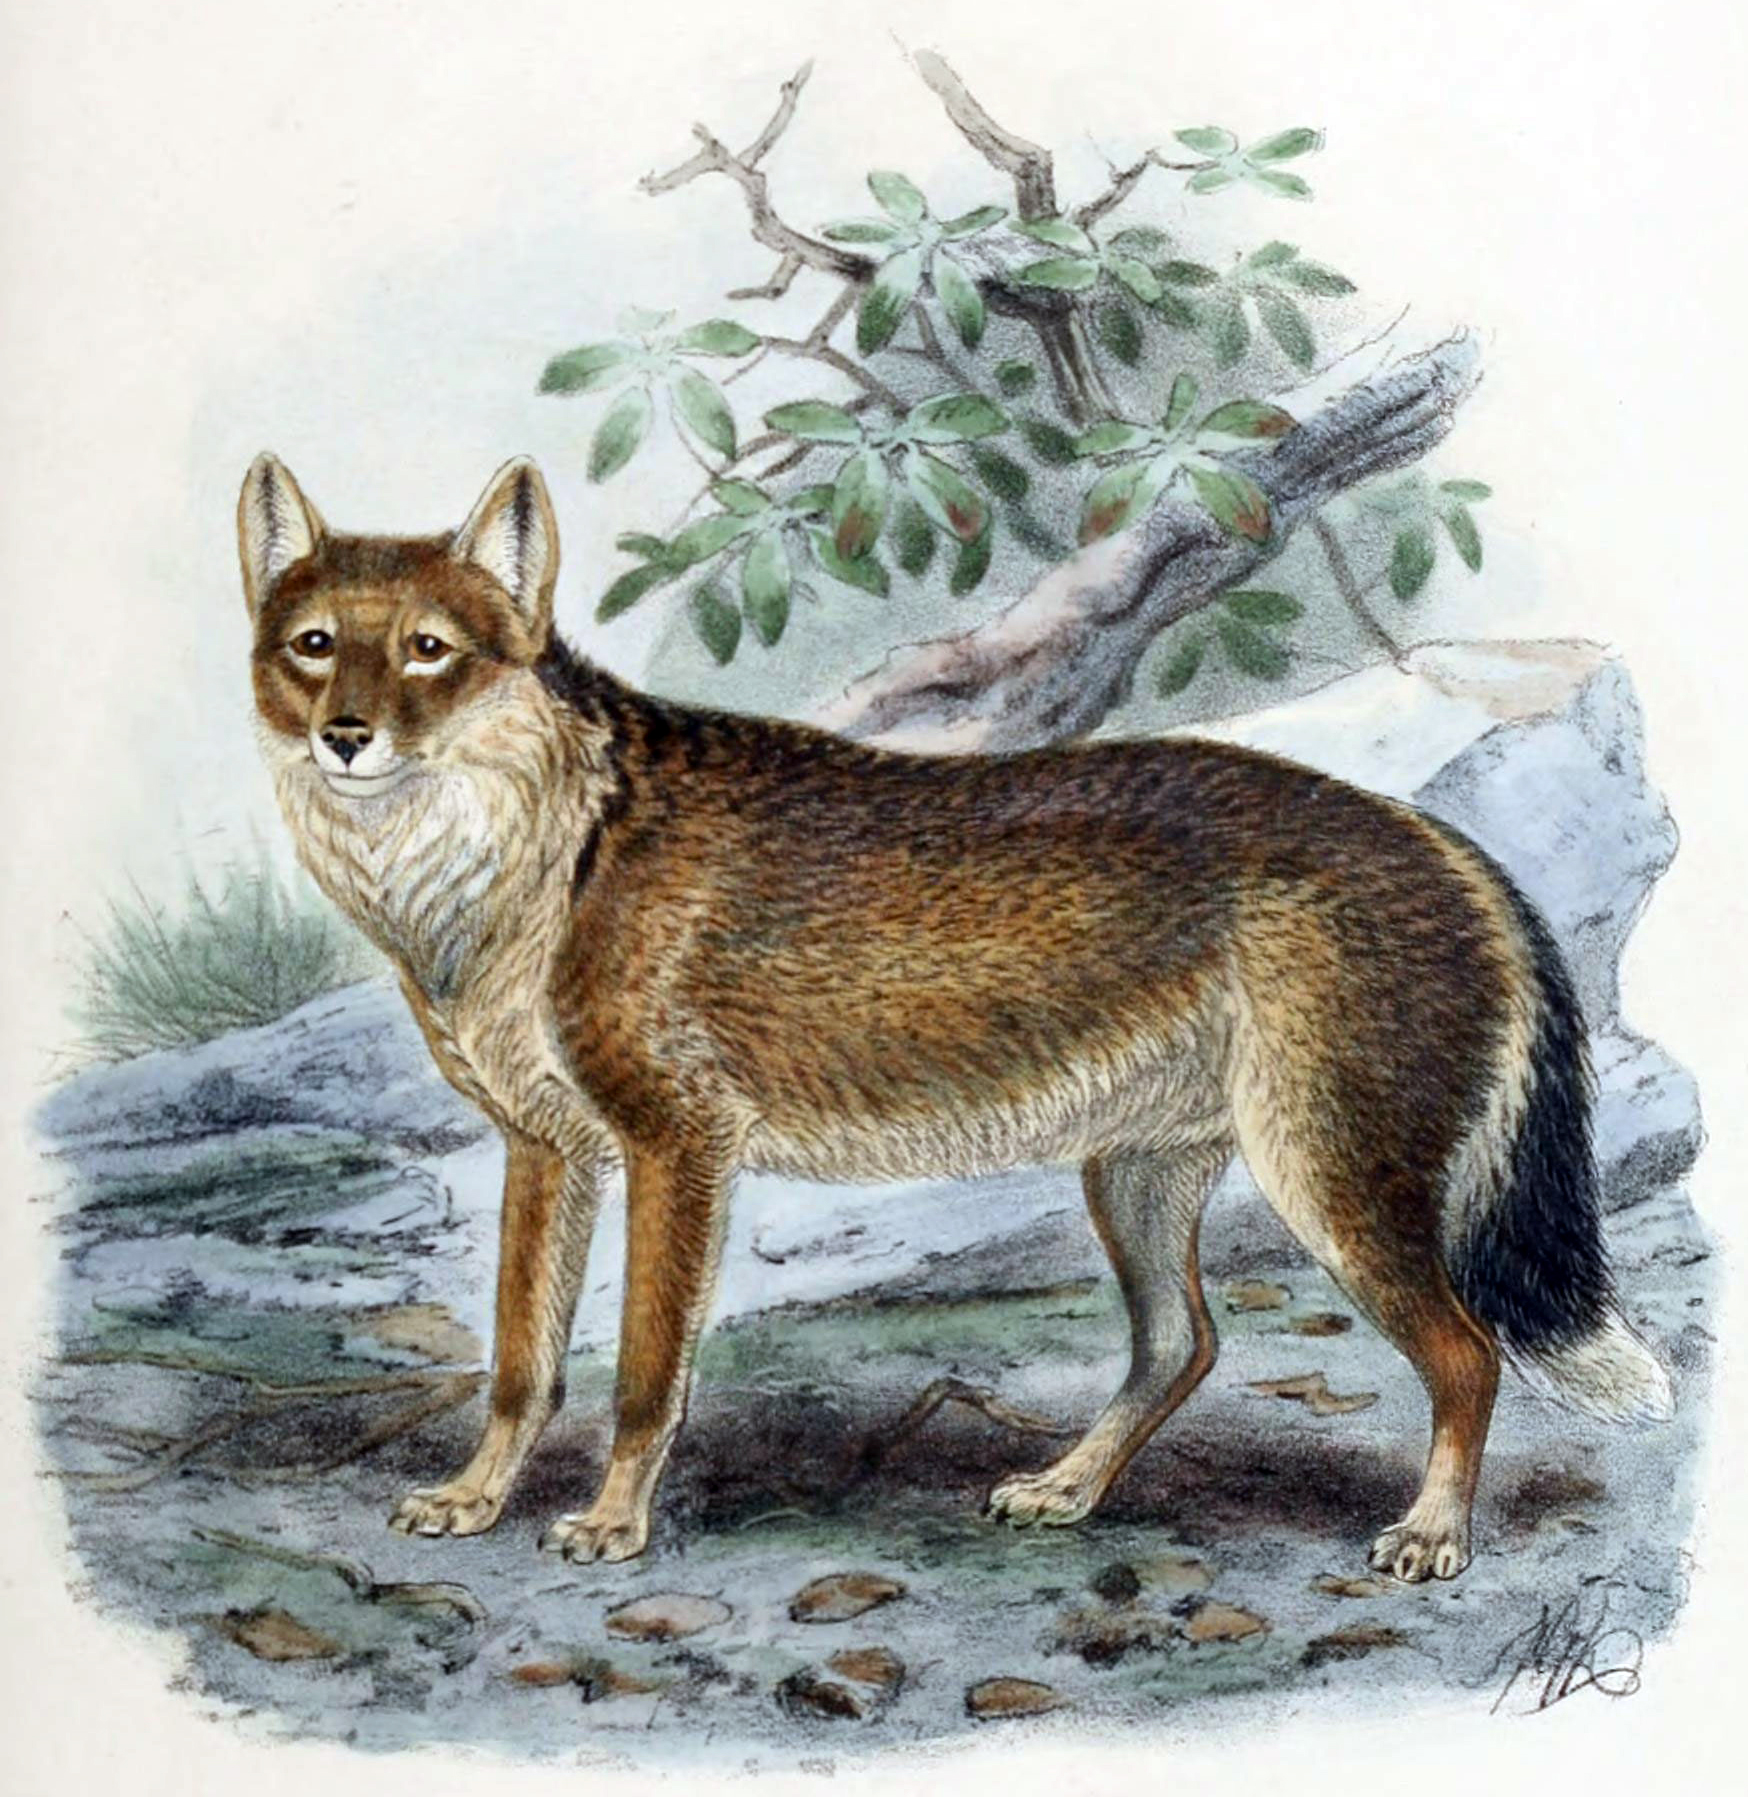 Falkland Islands wolf, by John Gerrard Keulemans (1842-1912)